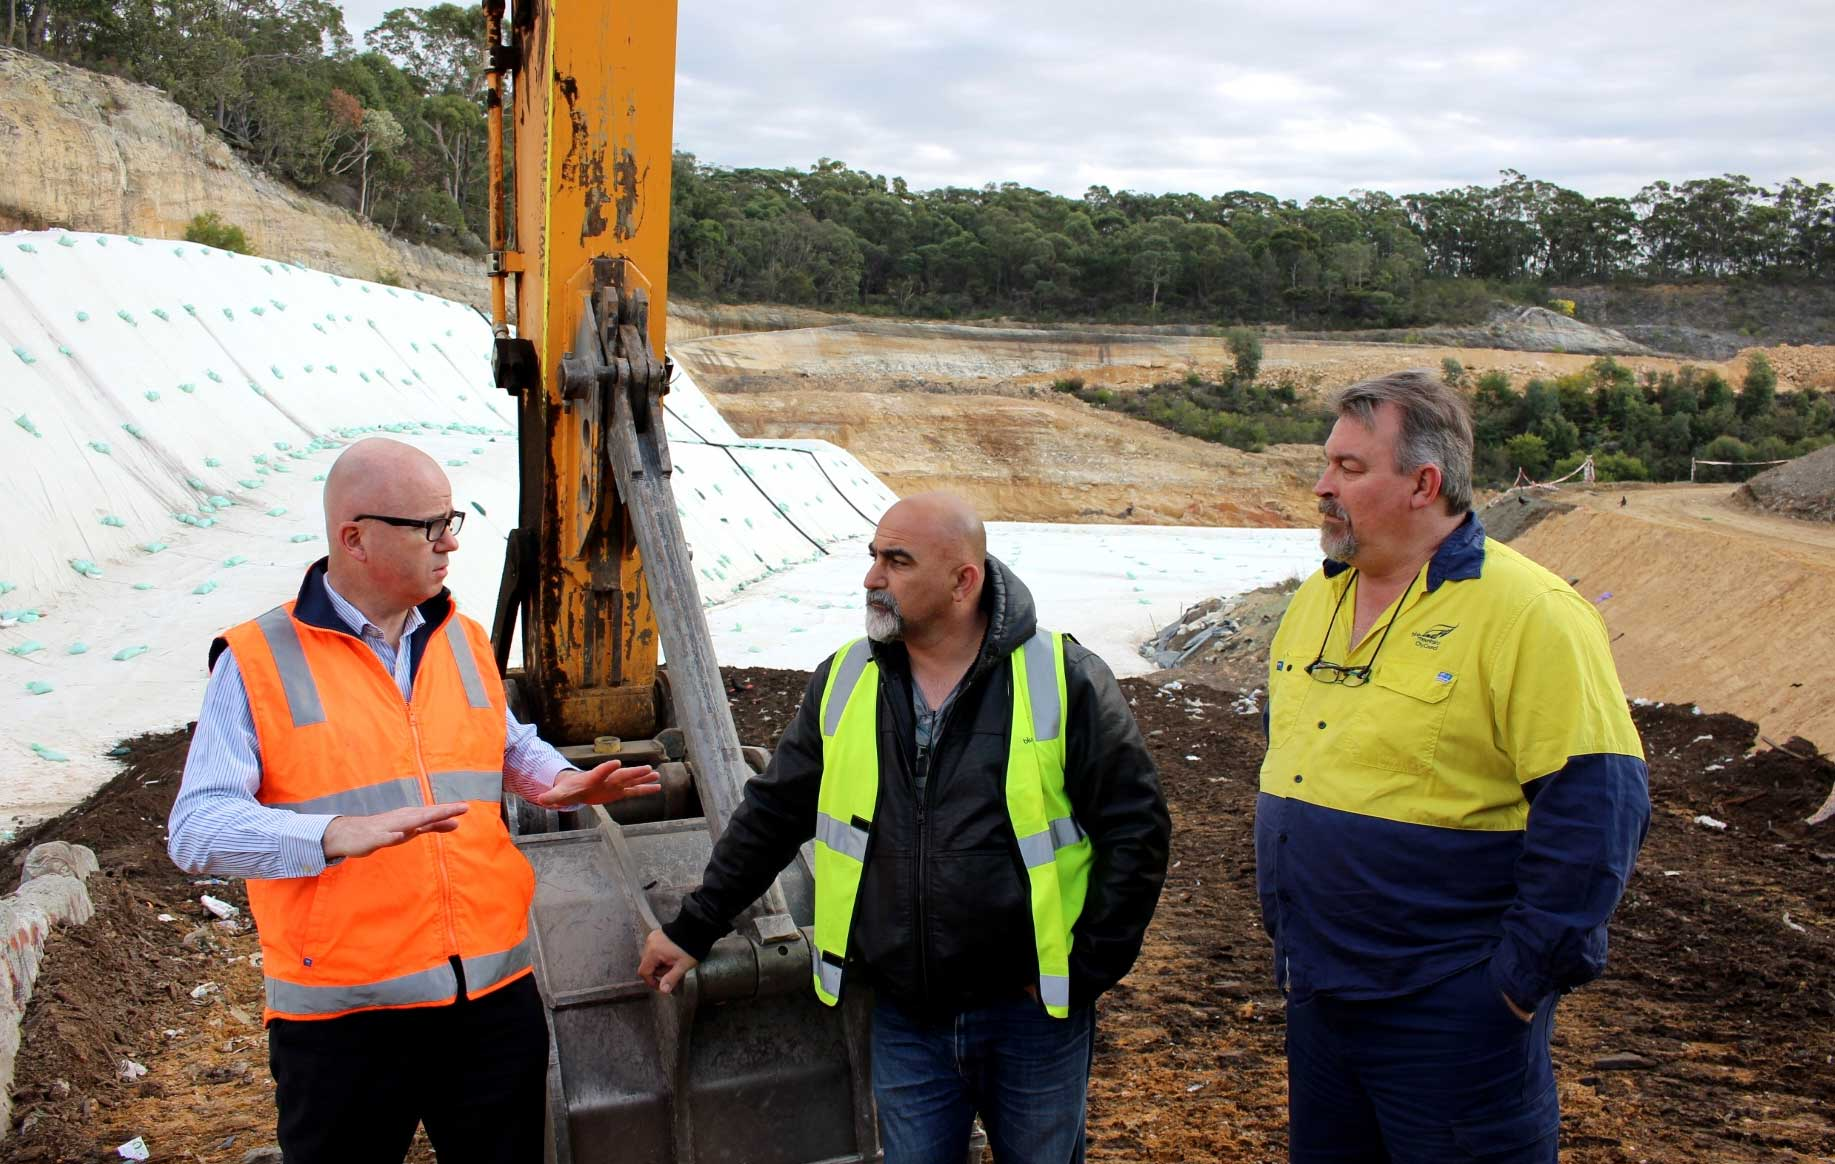 Mayor, Cr Mark Greenhill, inspects the extension of Blaxland landfill cell with Council's waste management staff. Blue Mountains has reduced waste to landfill by 50% since 2003, an impressive and uncommon trend in Australia.